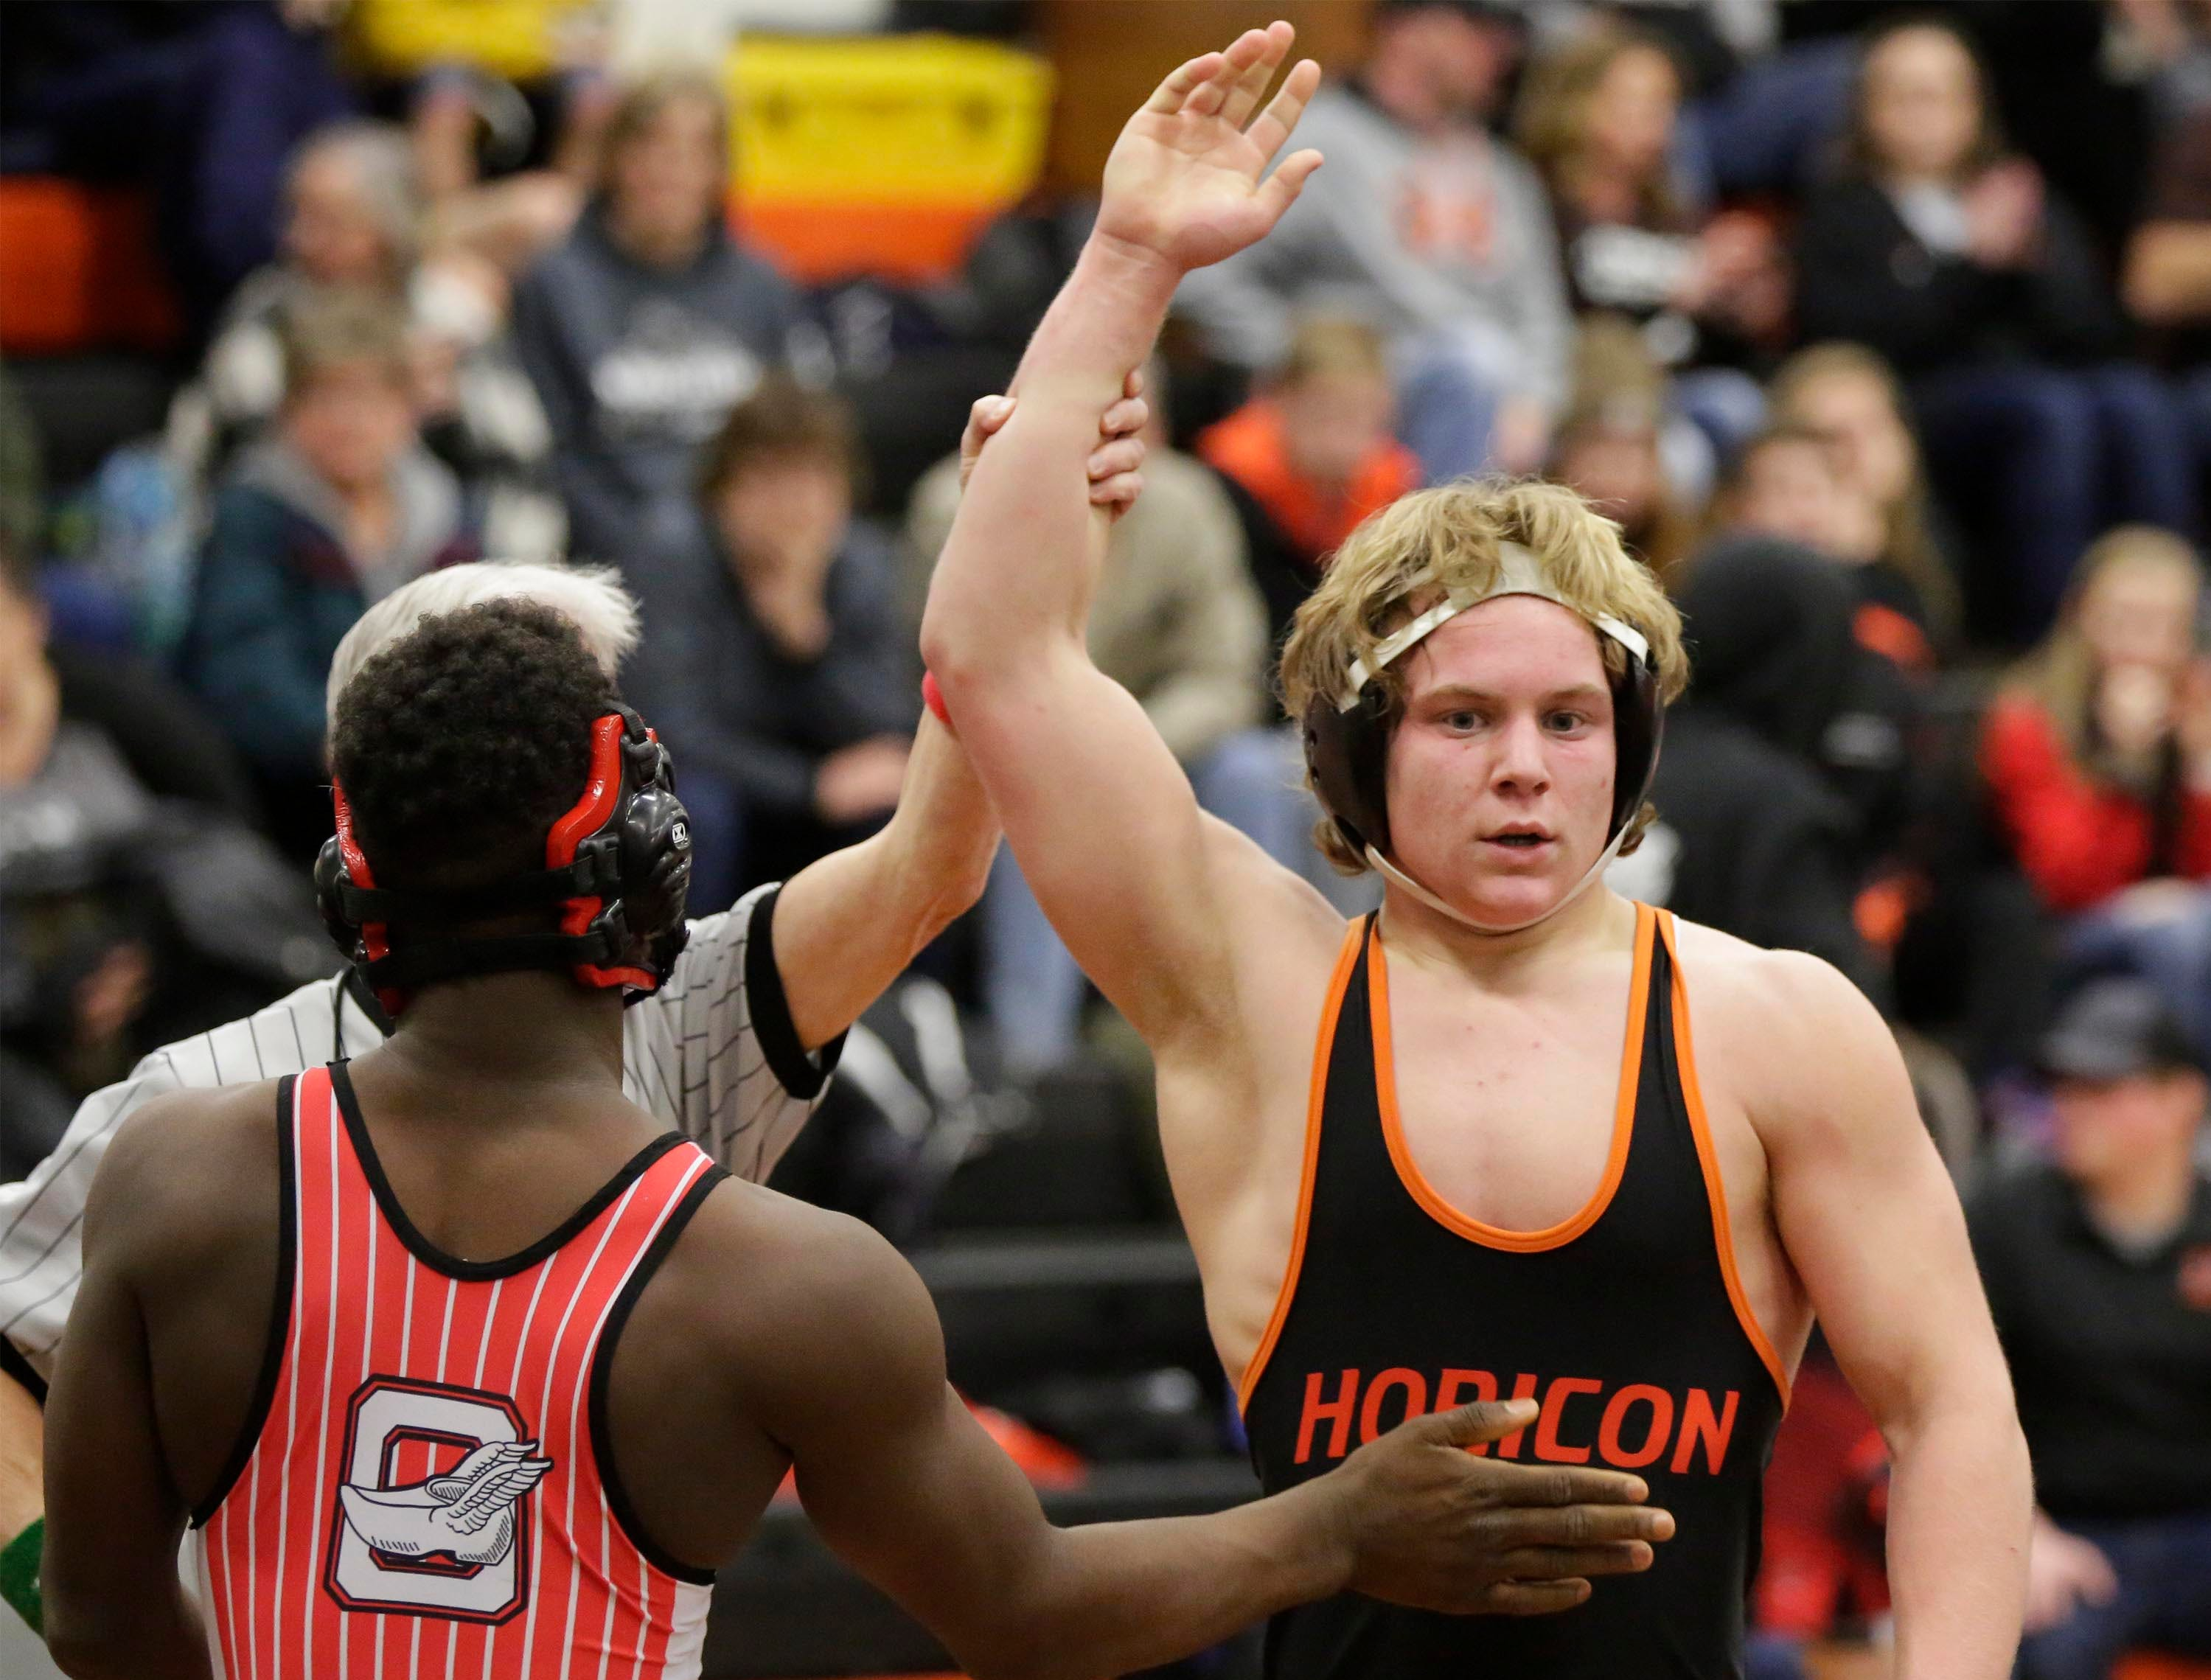 Horicon's Josh Thomsen arm is raised in victory, right, after he defeated Oostburg's Jay DeBlaey in a 152-pound bouth at the WIAA Div. 3 Wrestling Regional, Saturday, February 9, 2019, in Oakfield, Wis. 